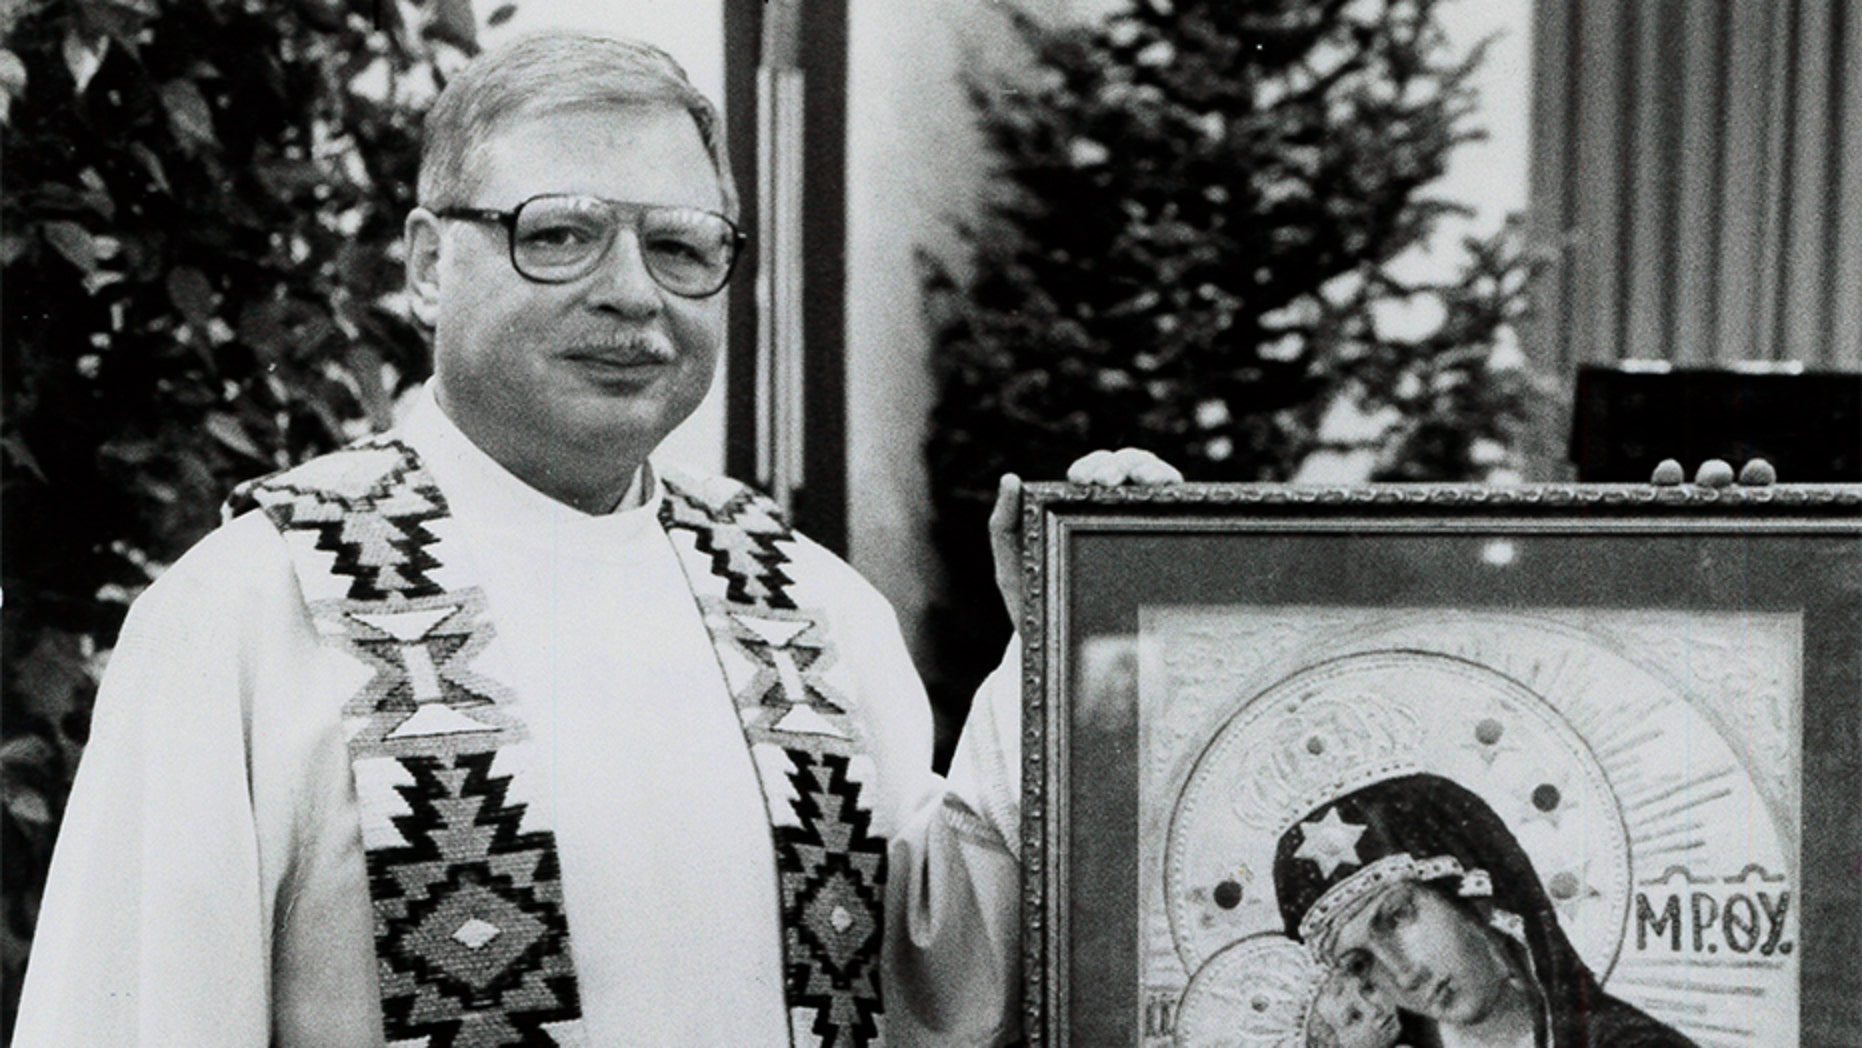 This 1989 file photo shows Father Arthur Perrault in Albuquerque, N.M.